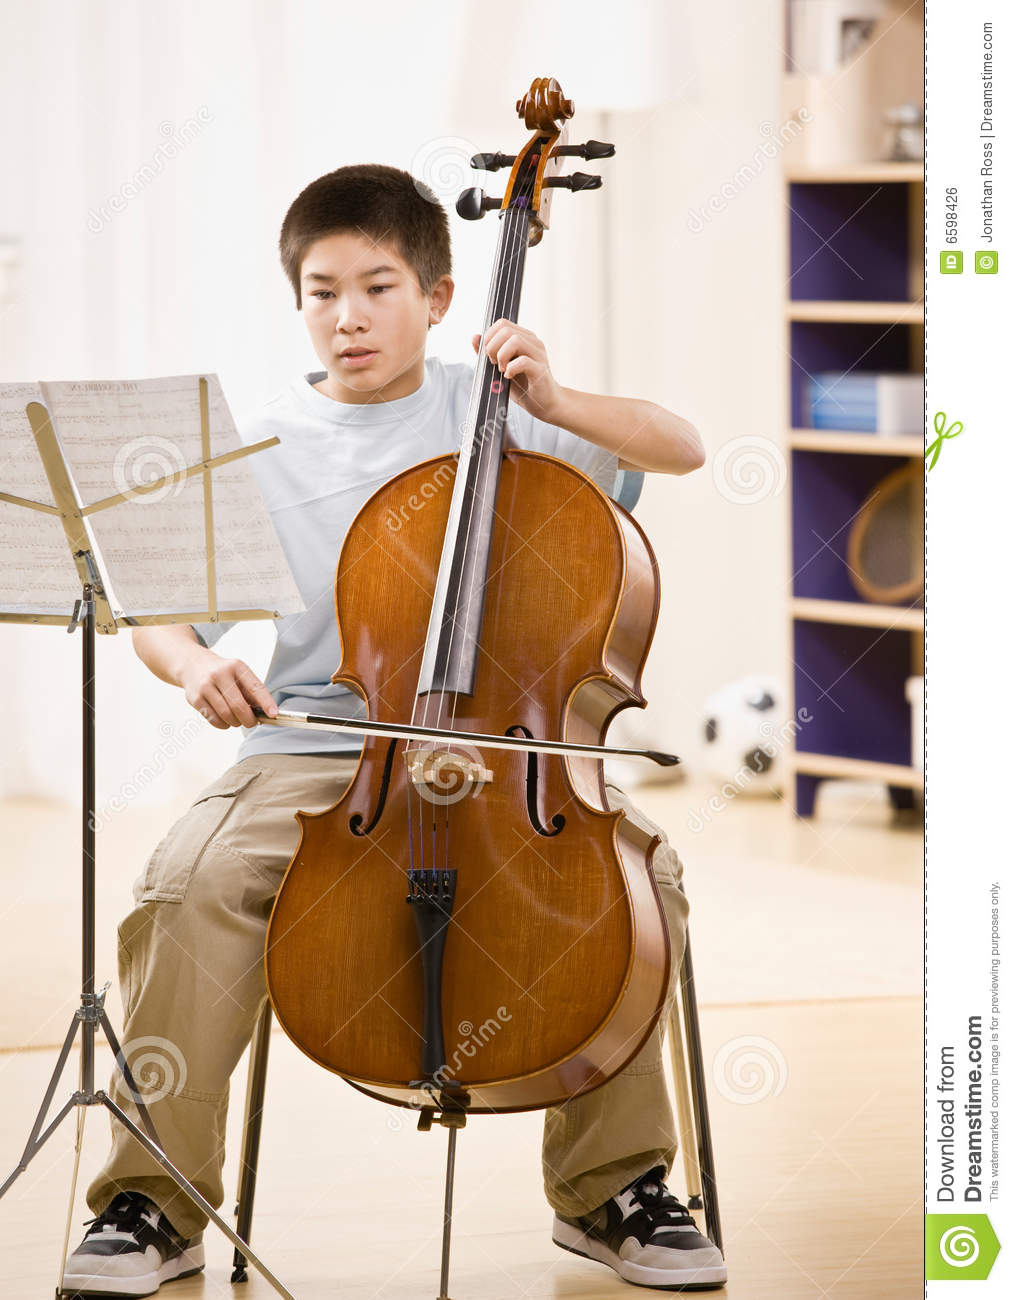 Musician practices performing on cello